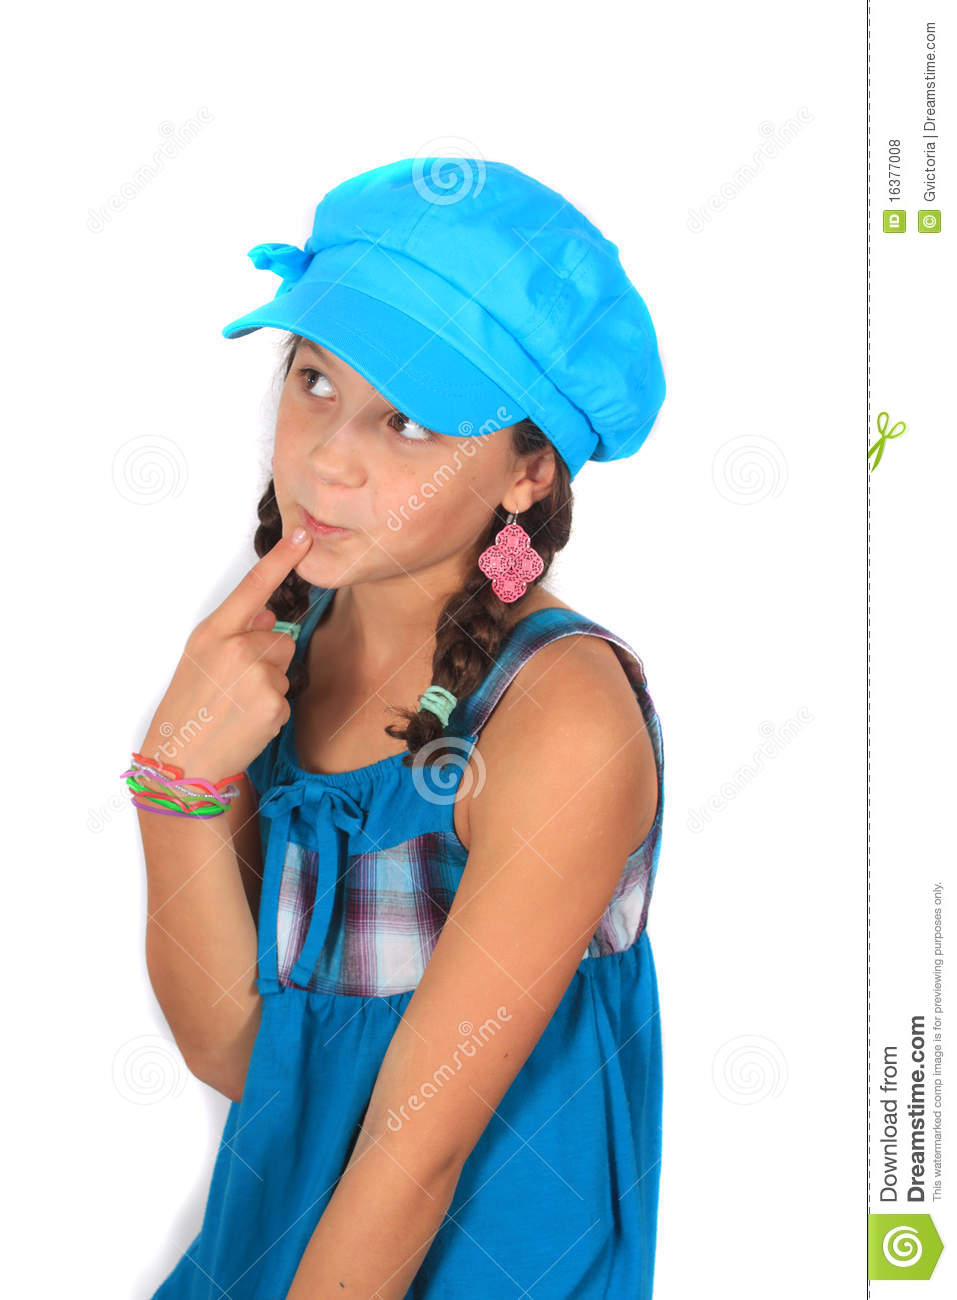 Pretty ten year old adolescent girl with braids and colorful blue